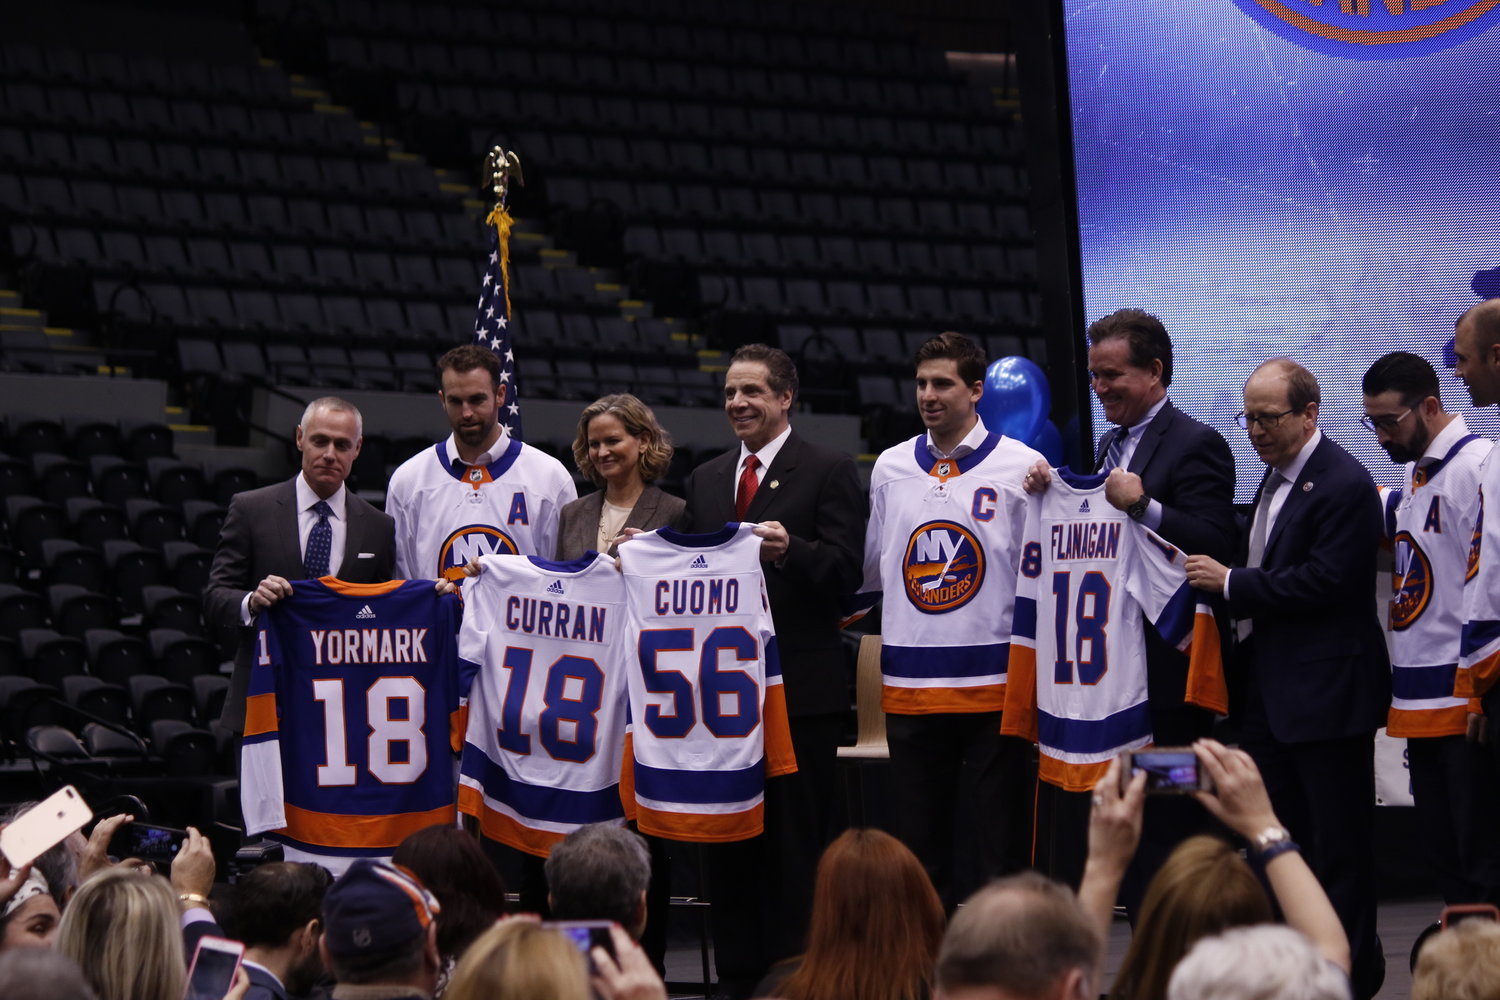 The Islanders announced that they would return to Nassau Coliseum part-time in January 2018, when, from left, Brett Yormark, CEO of Brooklyn Sports & Entertainment, County Executive Laura Curran, Gov. Andrew Cuomo and State Senate Majority Leader John Flanagan were given honorary Islanders jerseys. They were accompanied by Islanders Owner Jon Ledecky and several players.